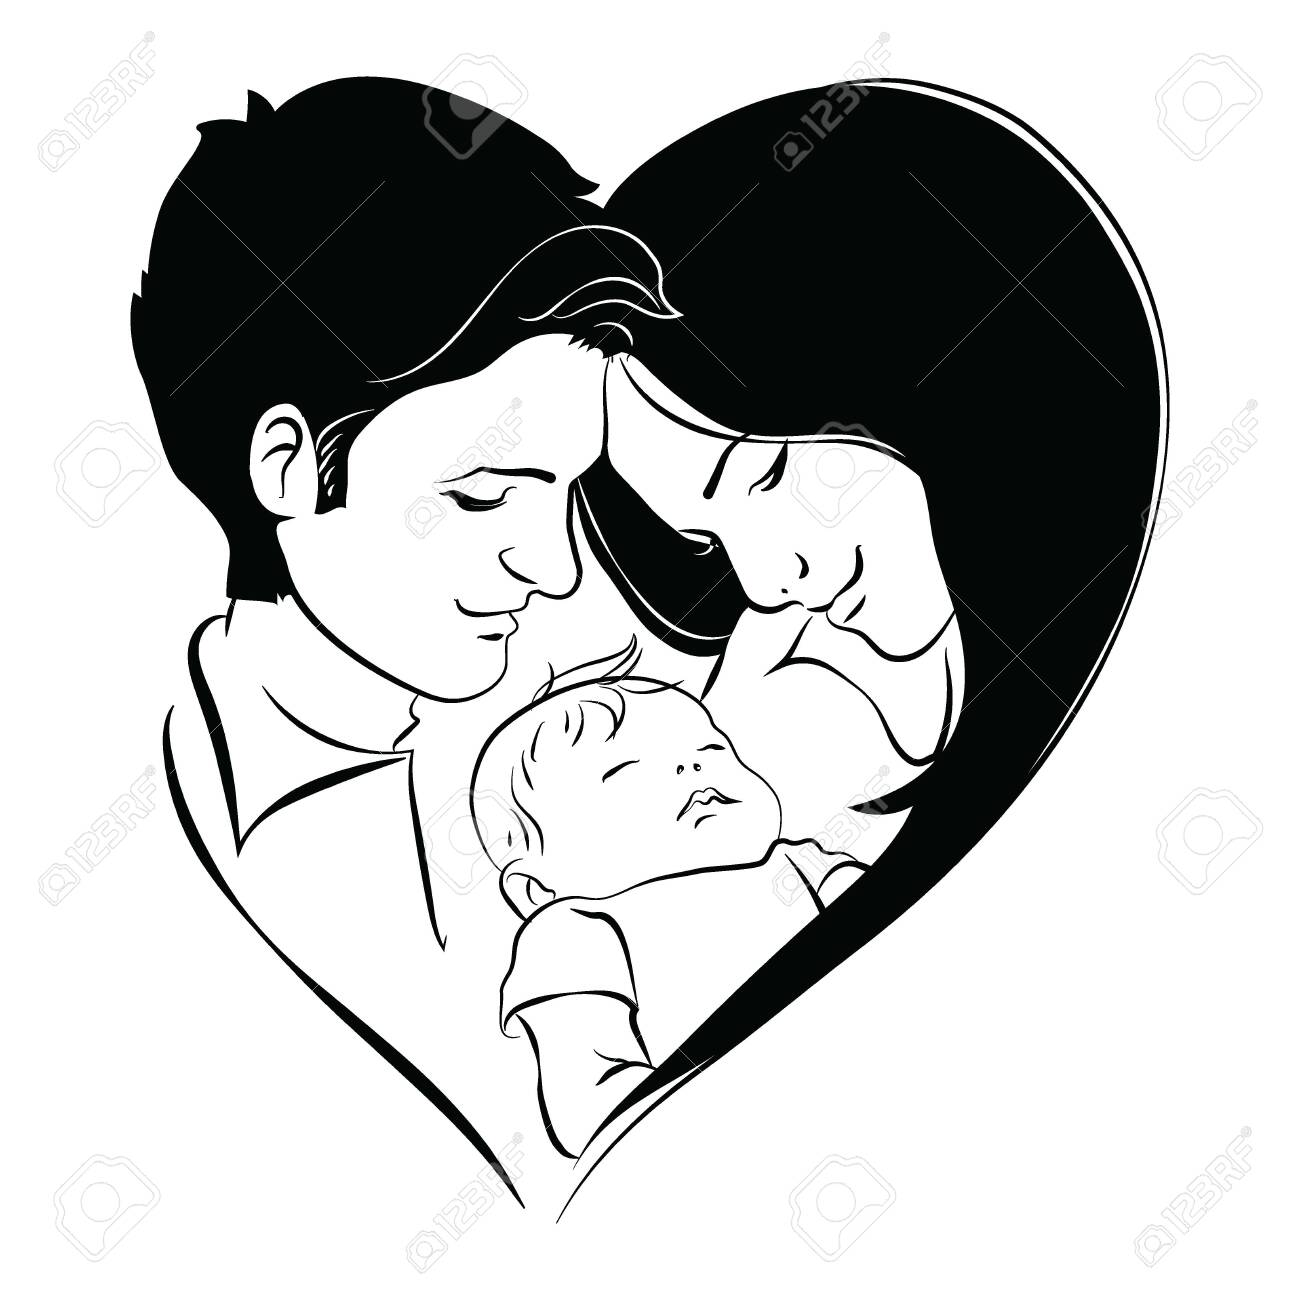 Family With Baby Father And Mother Hug Their Child Black And Royalty Free Cliparts Vectors And Stock Illustration Image 129672262